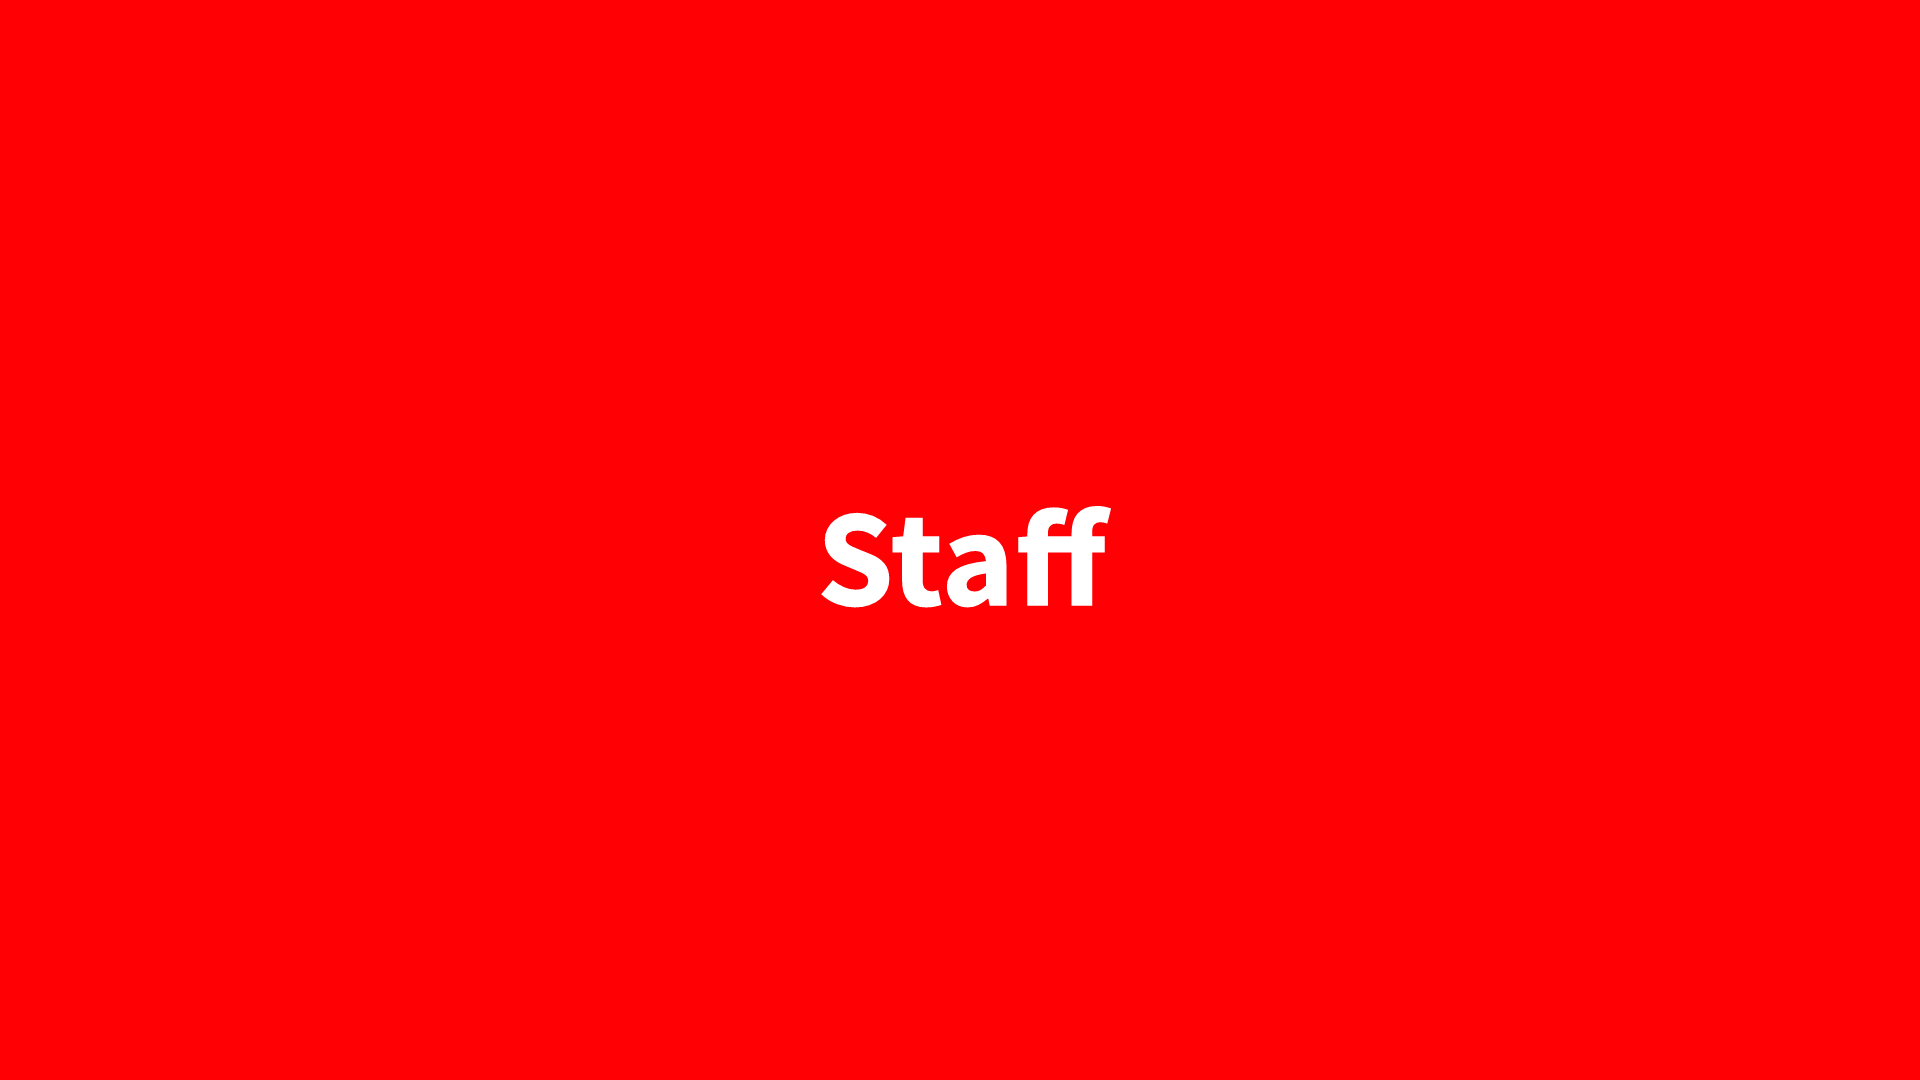 Staff-2.png